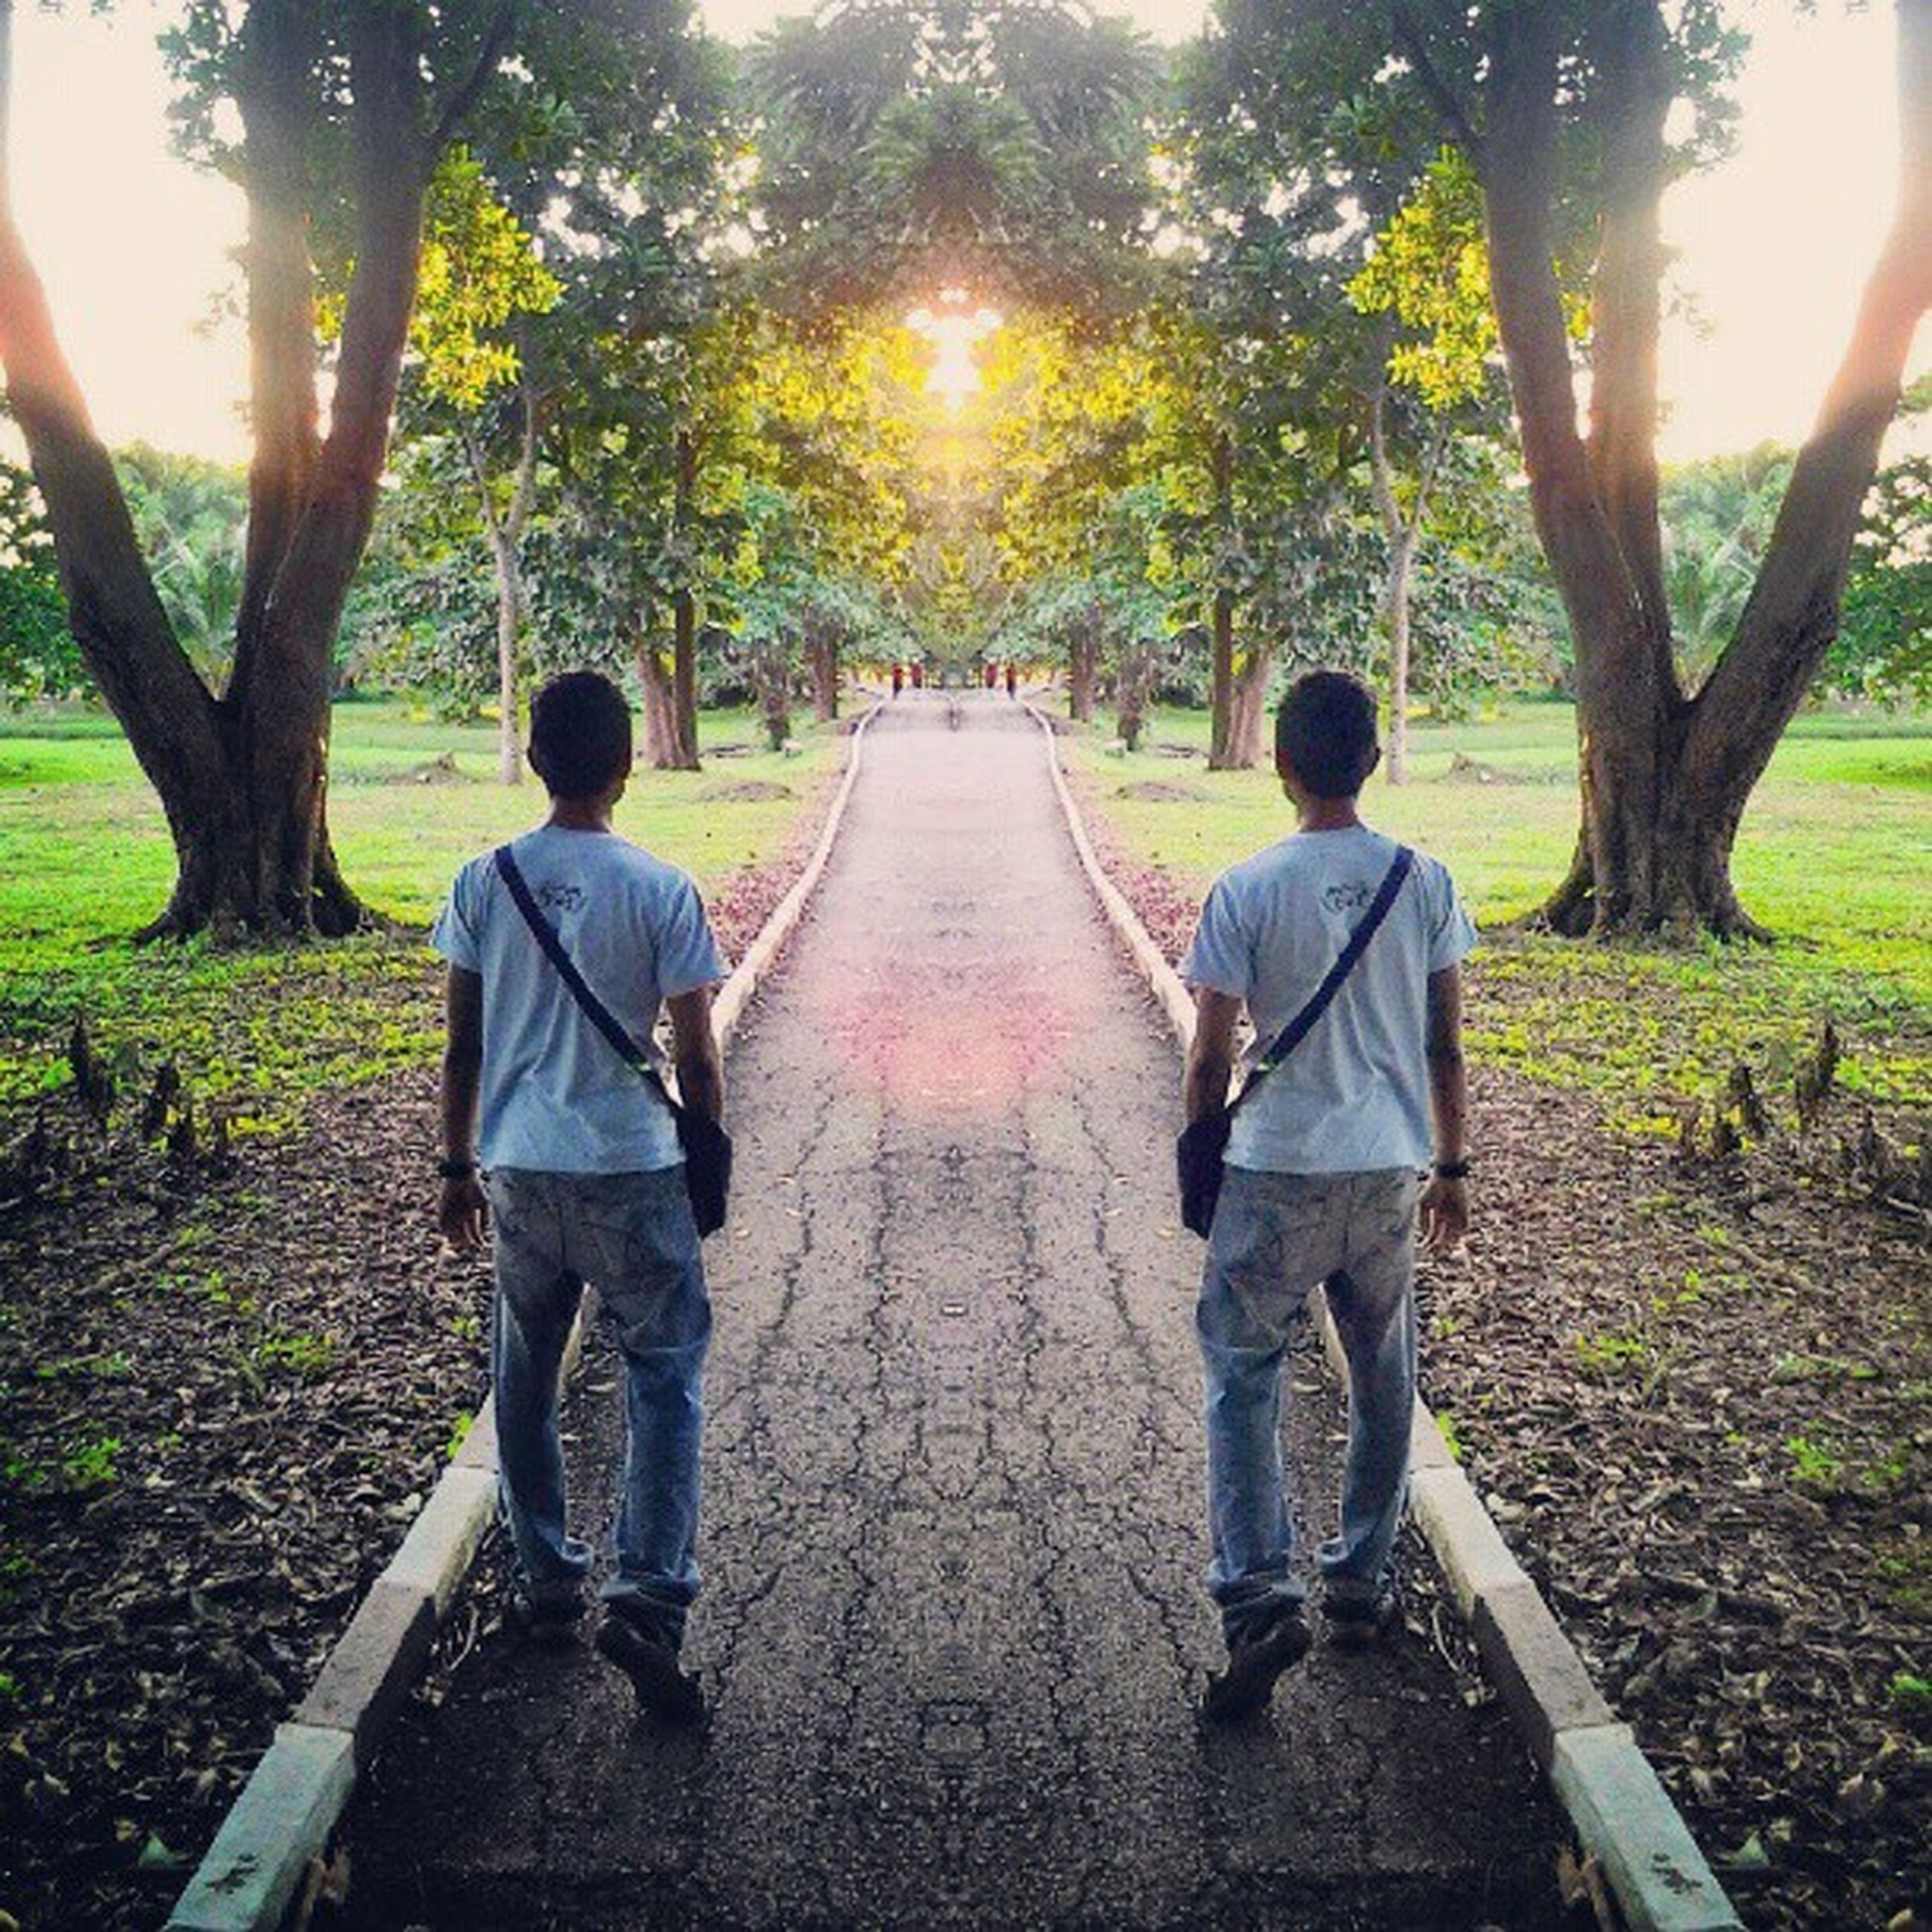 rear view, tree, full length, lifestyles, leisure activity, the way forward, casual clothing, sunlight, togetherness, walking, boys, men, bonding, childhood, standing, sun, footpath